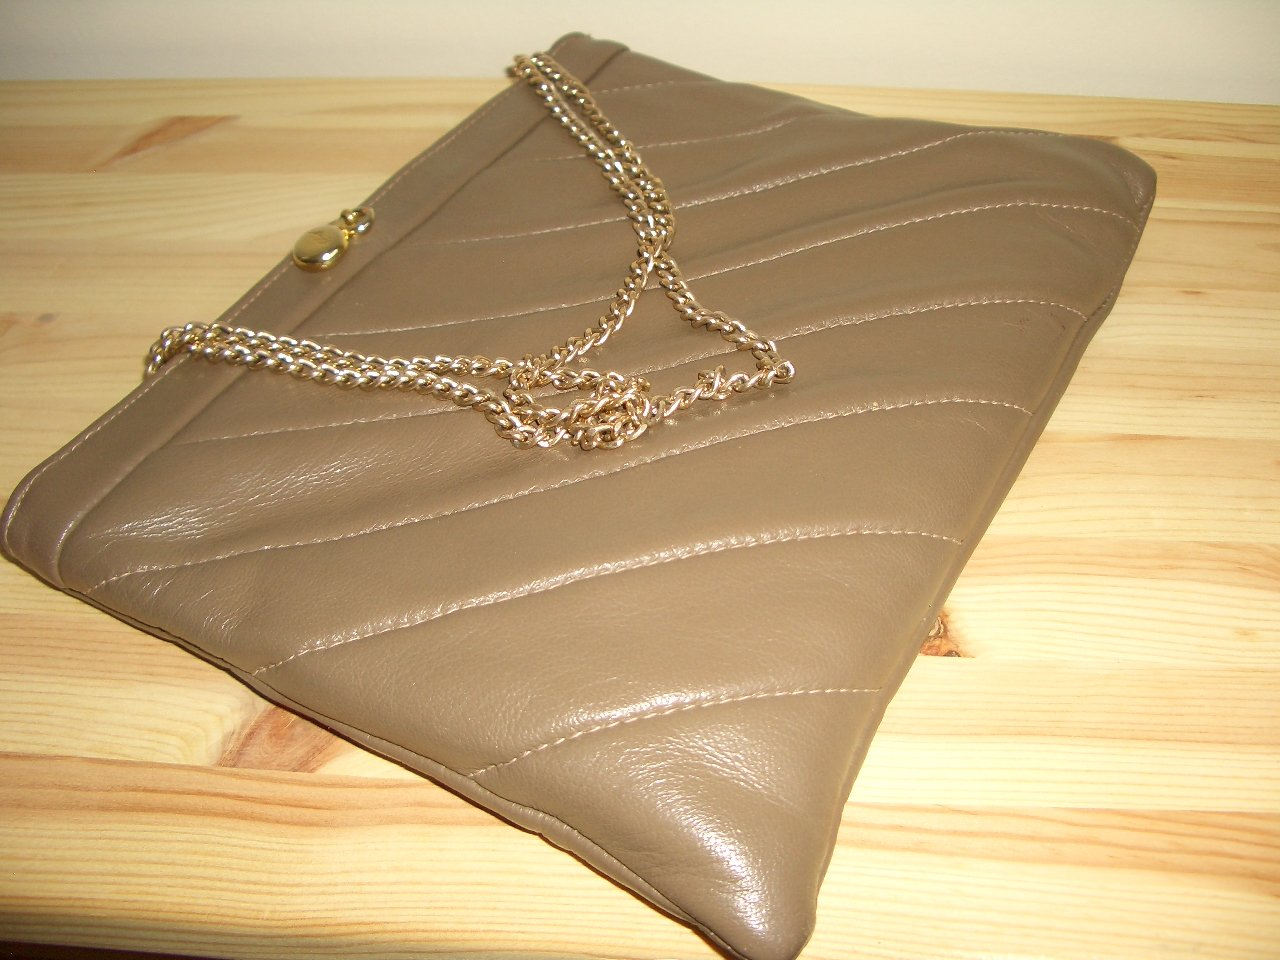 Vintage Beige Leather Ande Purse Quilted Taupe Ladylike Chic Clutch Handbag Chain Handles Flex Frame